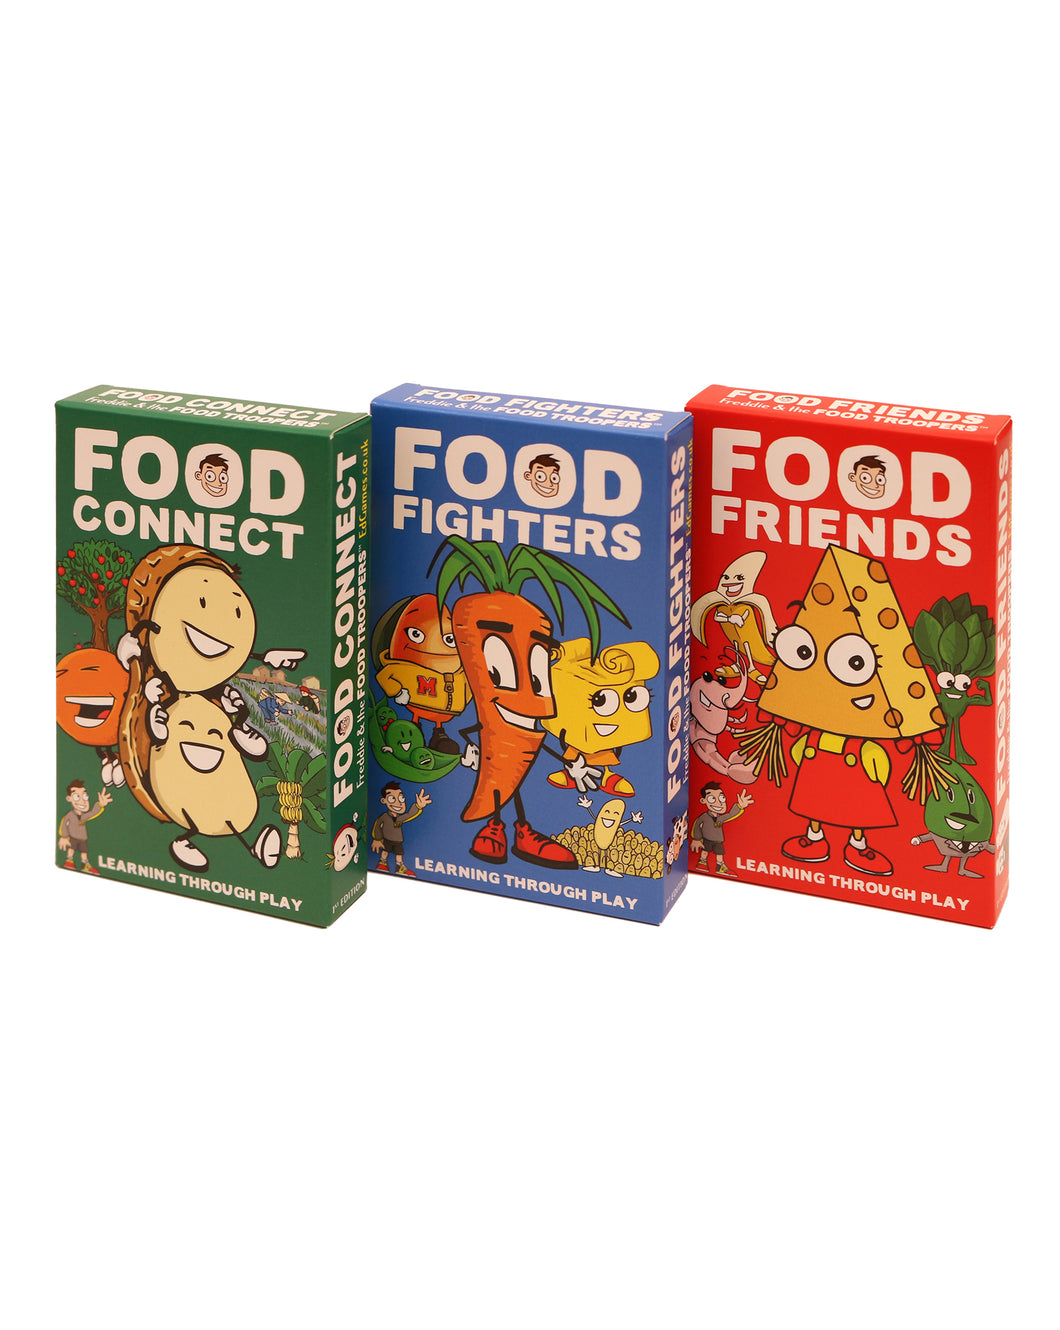 A collection of Food Connect, Food Fighters and Food Friends as a pack of 3